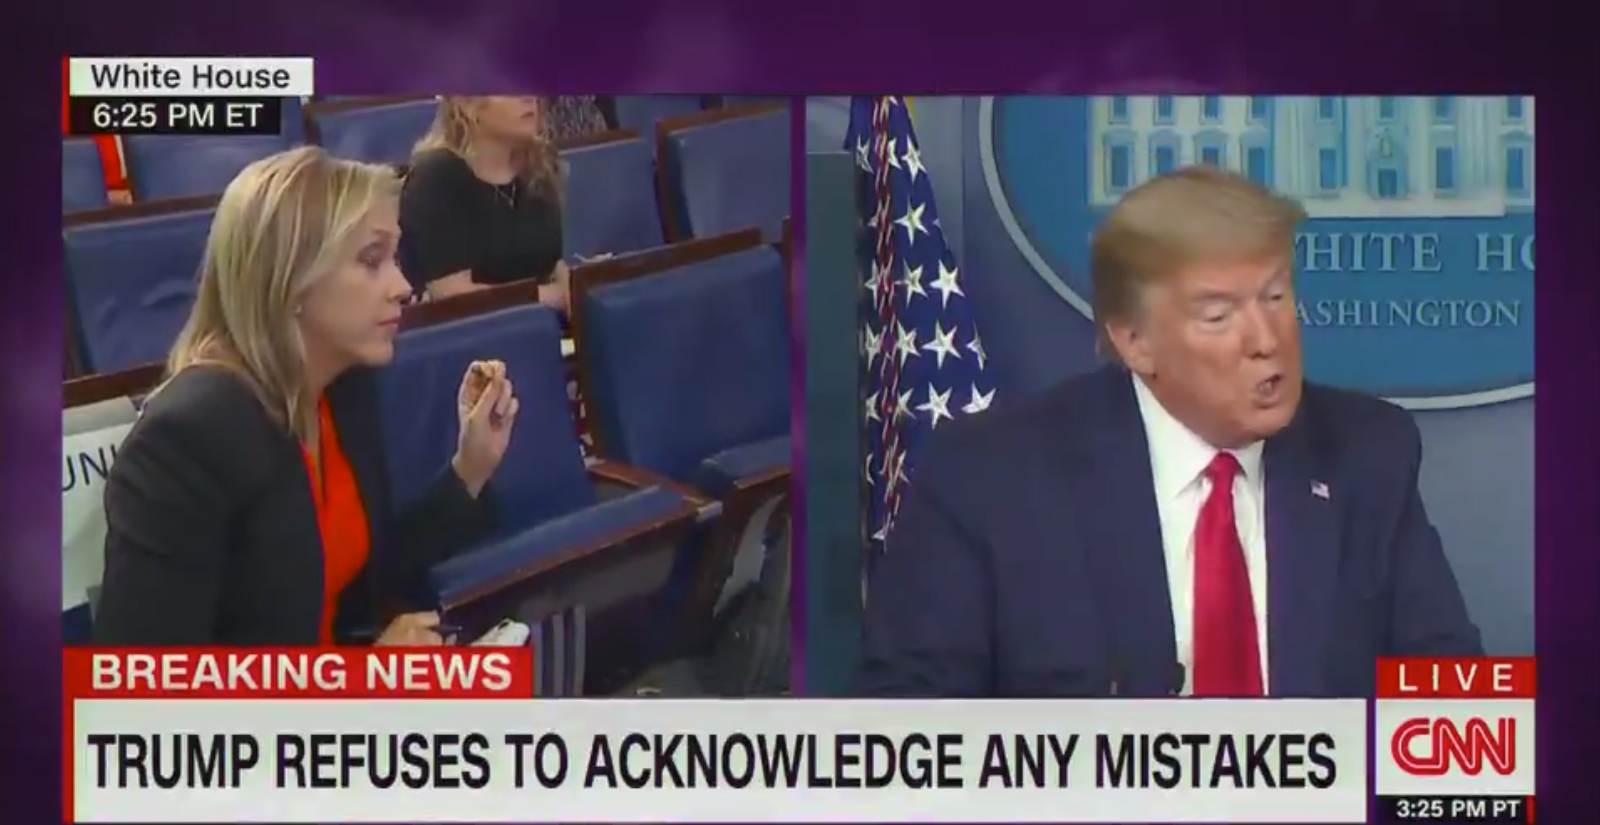 trump cnn chyron trump refuses to acknowledge any mistakes